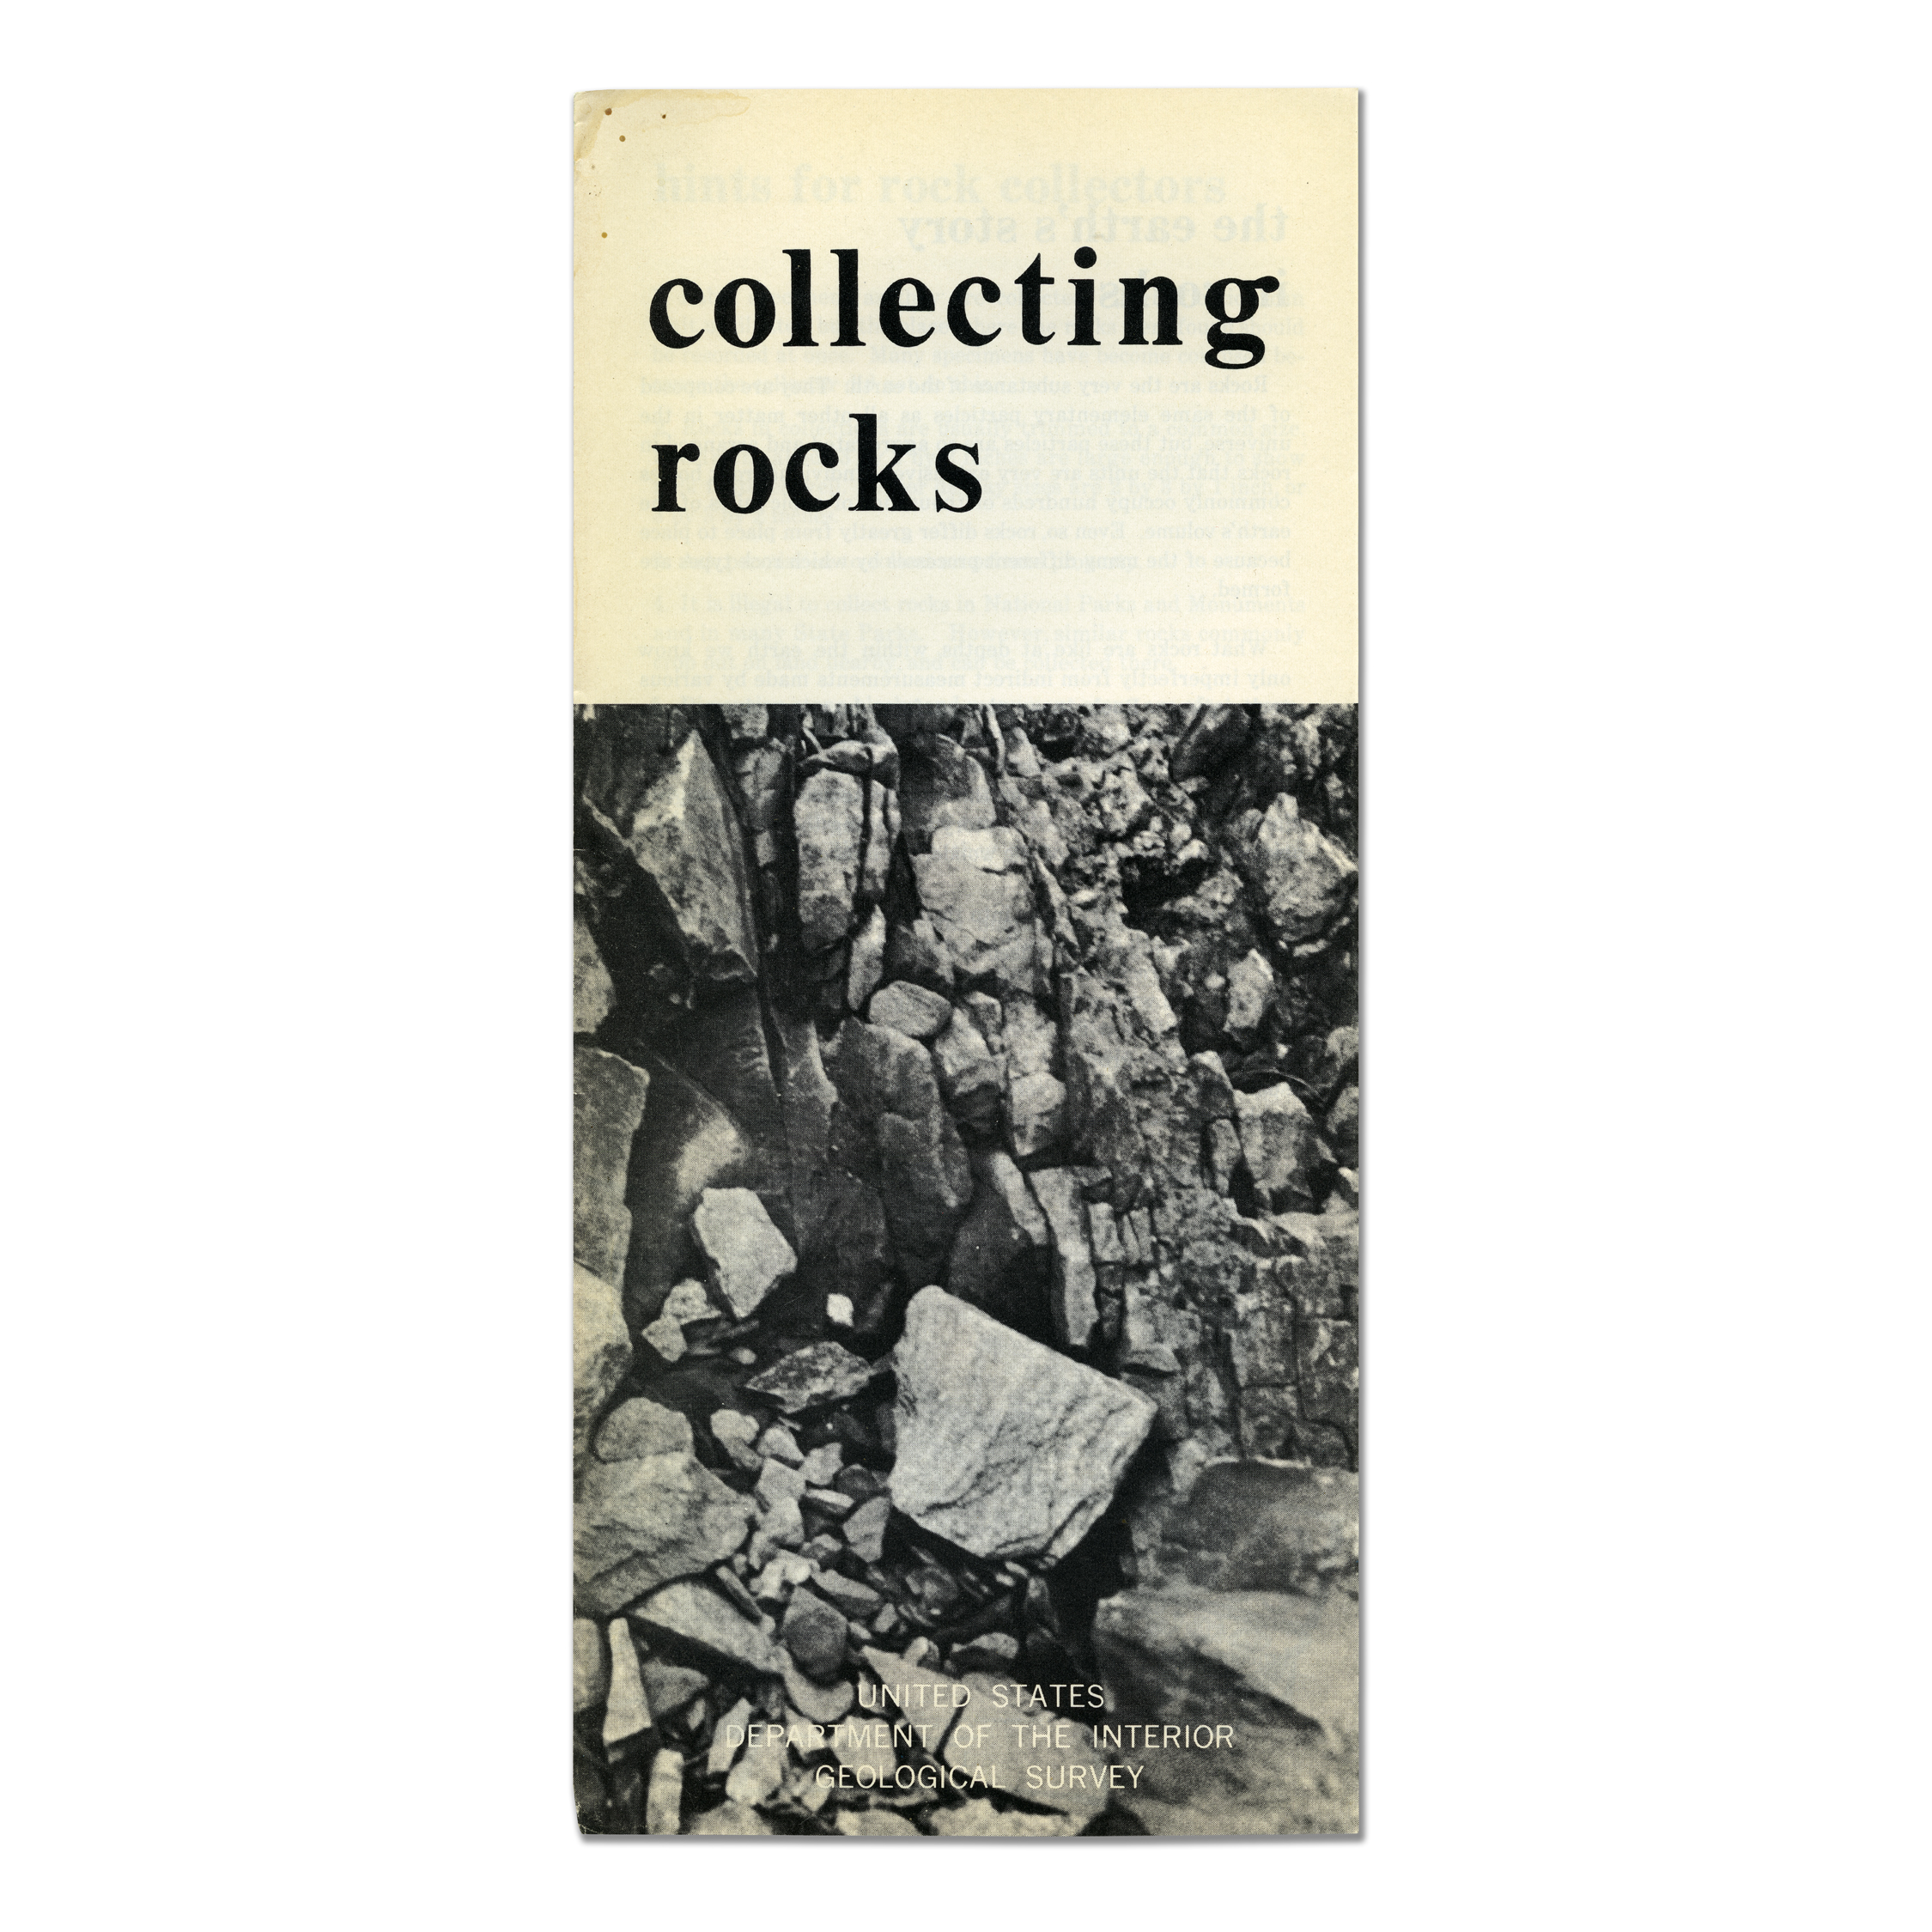 1968_collecting_rocks_brochure.jpg